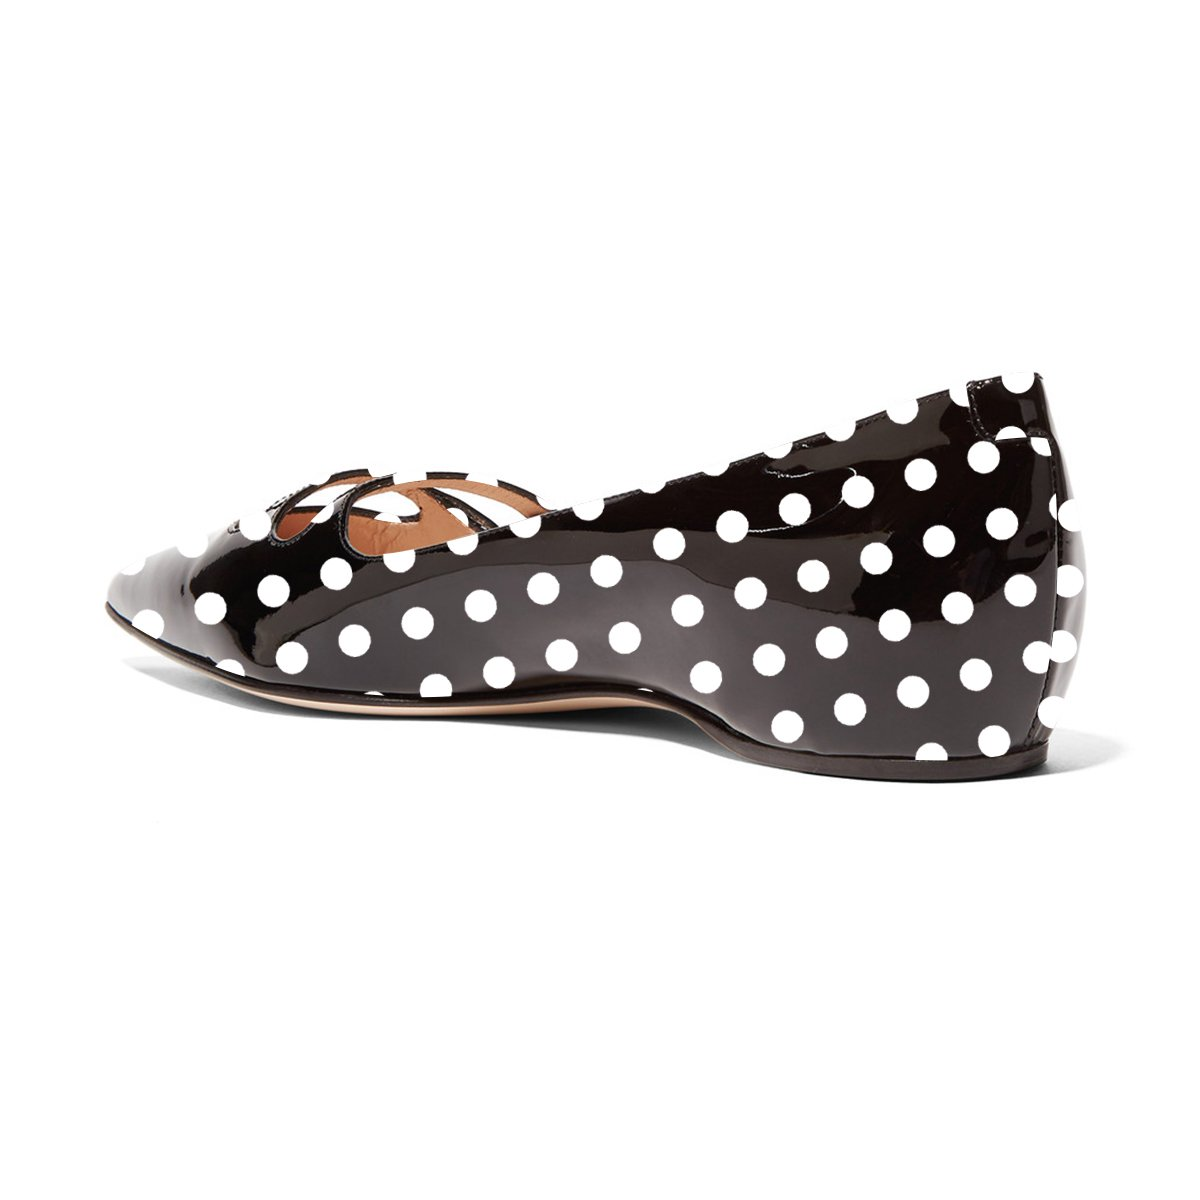 YDN Women Pointed Toe Slip on Pumps Flats Hidden Low Heels Pumps on Comfort Shoes with Straps B07DKYNH69 9.5 M US|Black Polka Dot b5358e